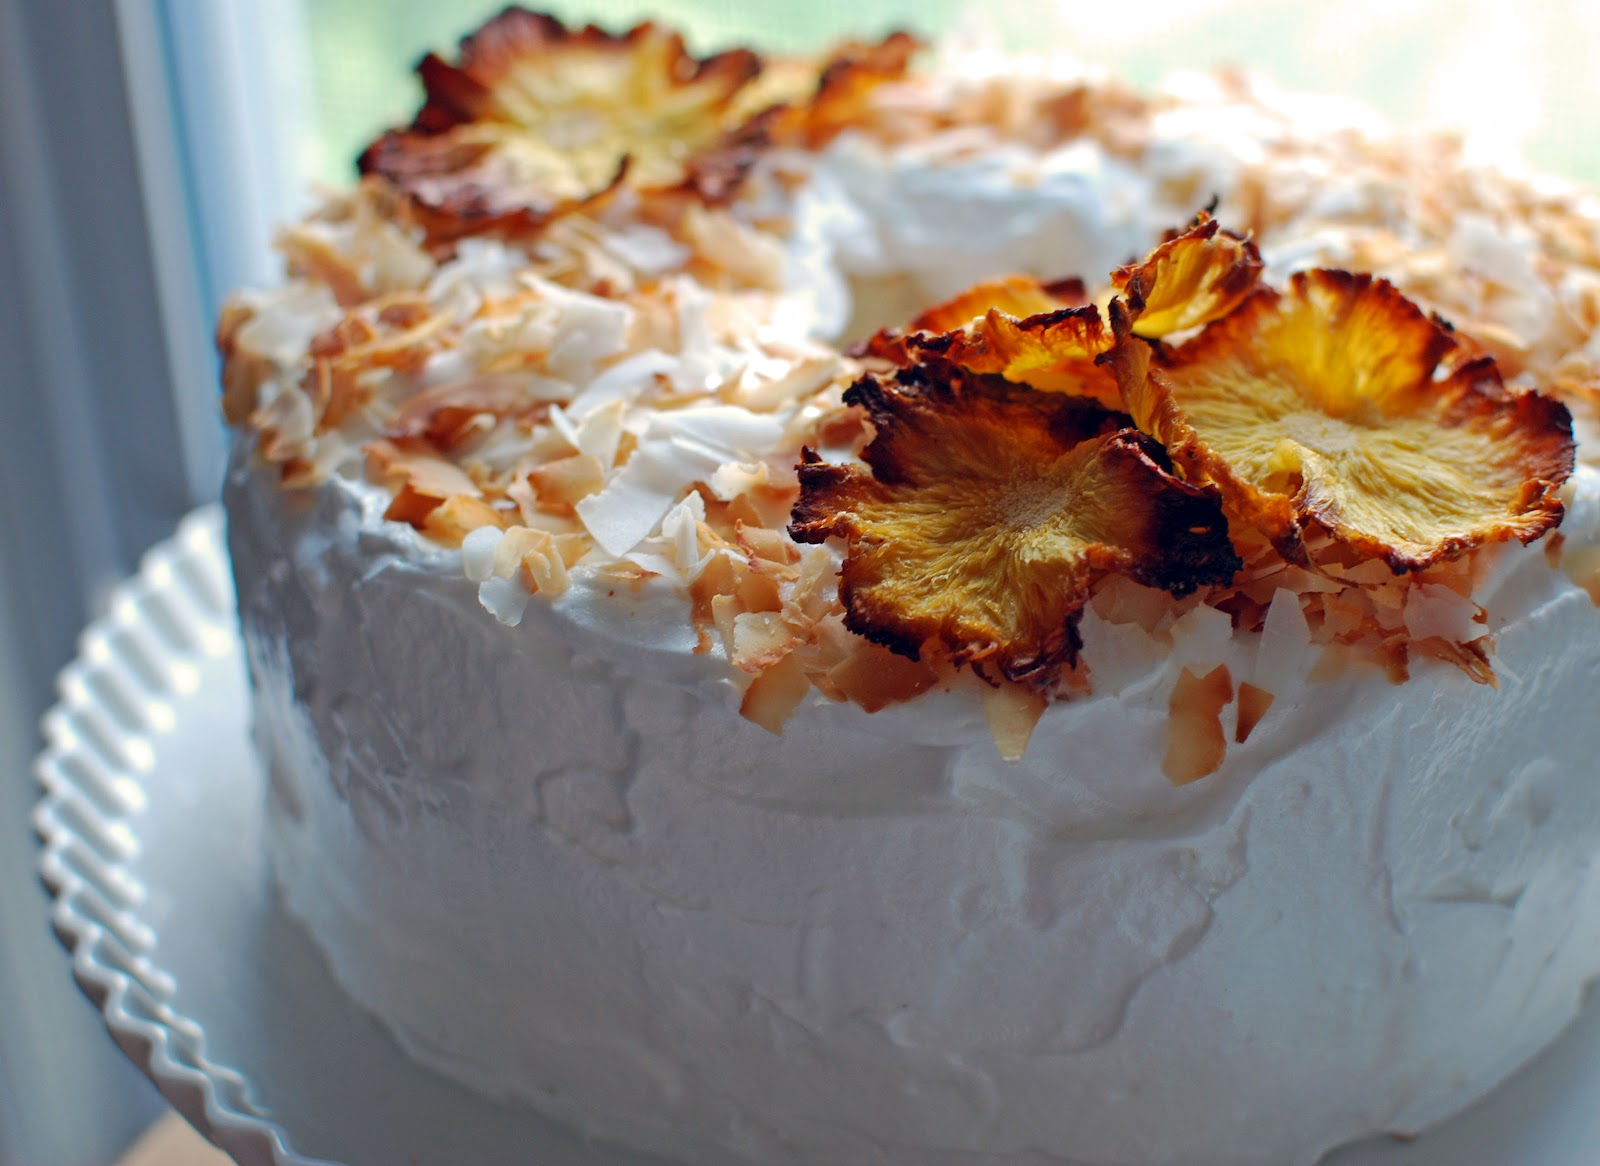 The Kitchen Boudoir: Coconut Cloud Cake with Pineapple Flowers